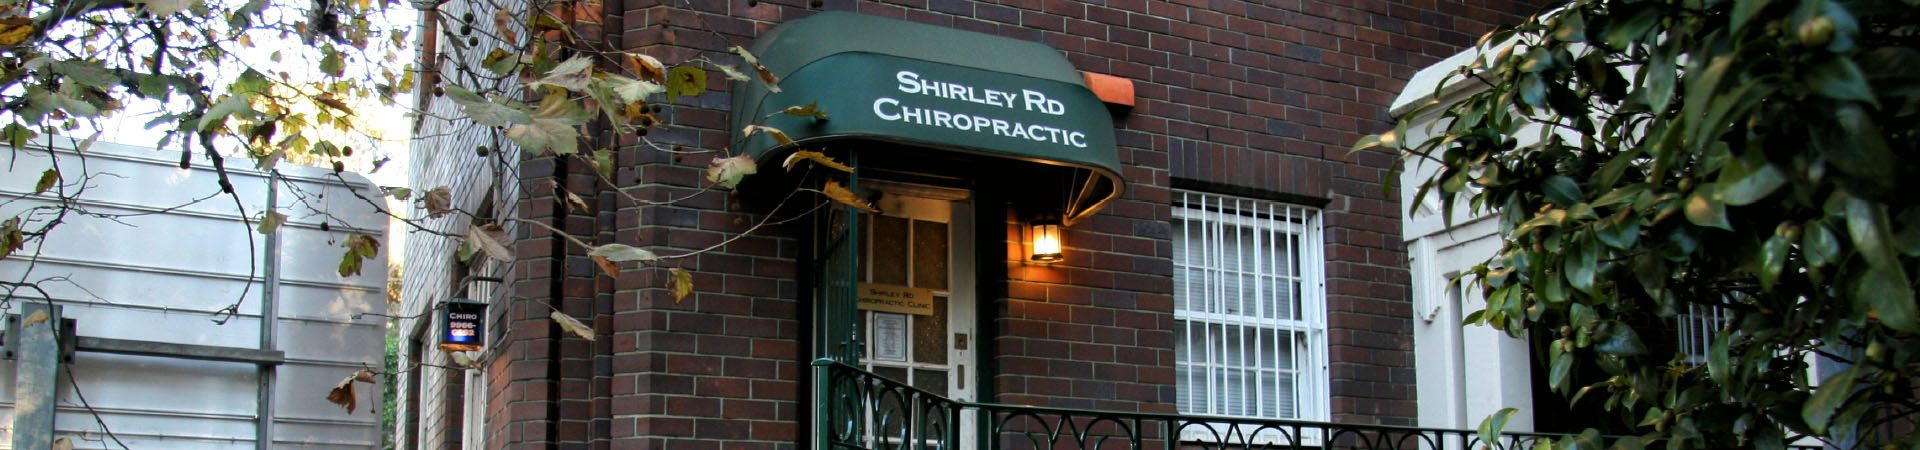 Shirley Rd Chiropractic Crows Nest Practice